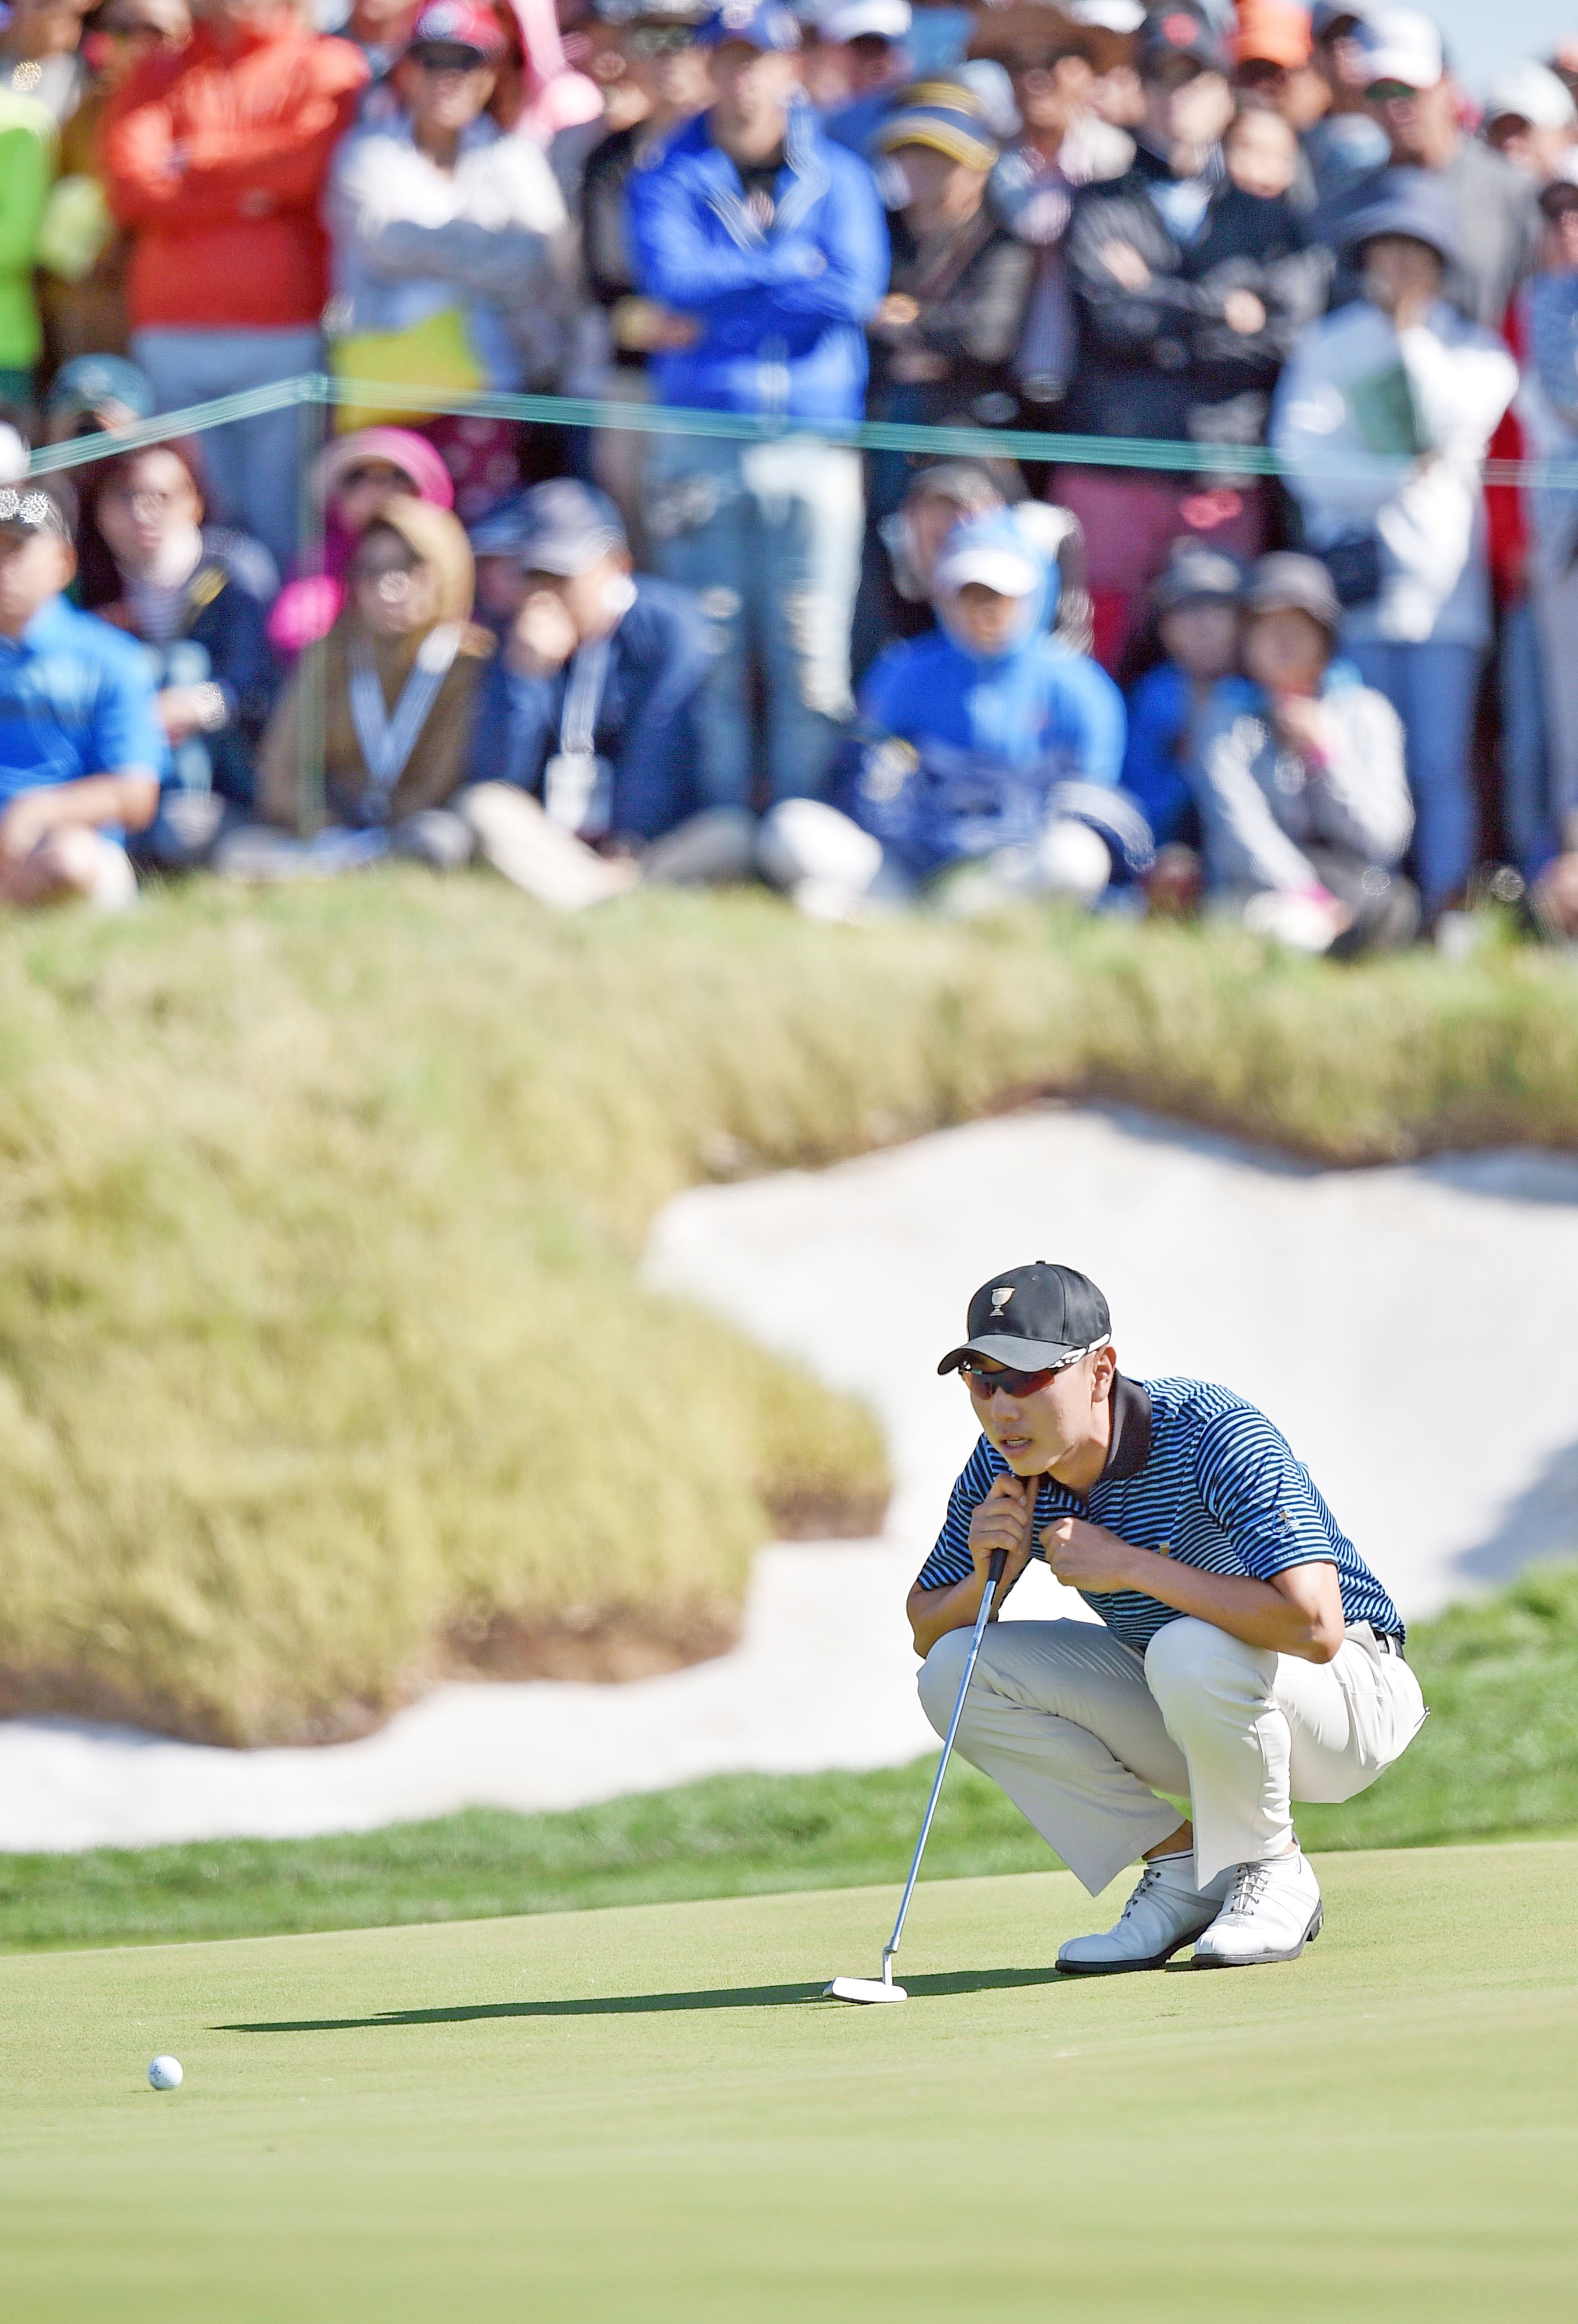 Bae Sang-Moon of South Korea lines up a putt on the 14th hole during the second round match at the Presidents Cup on Friday. Photo: AFP